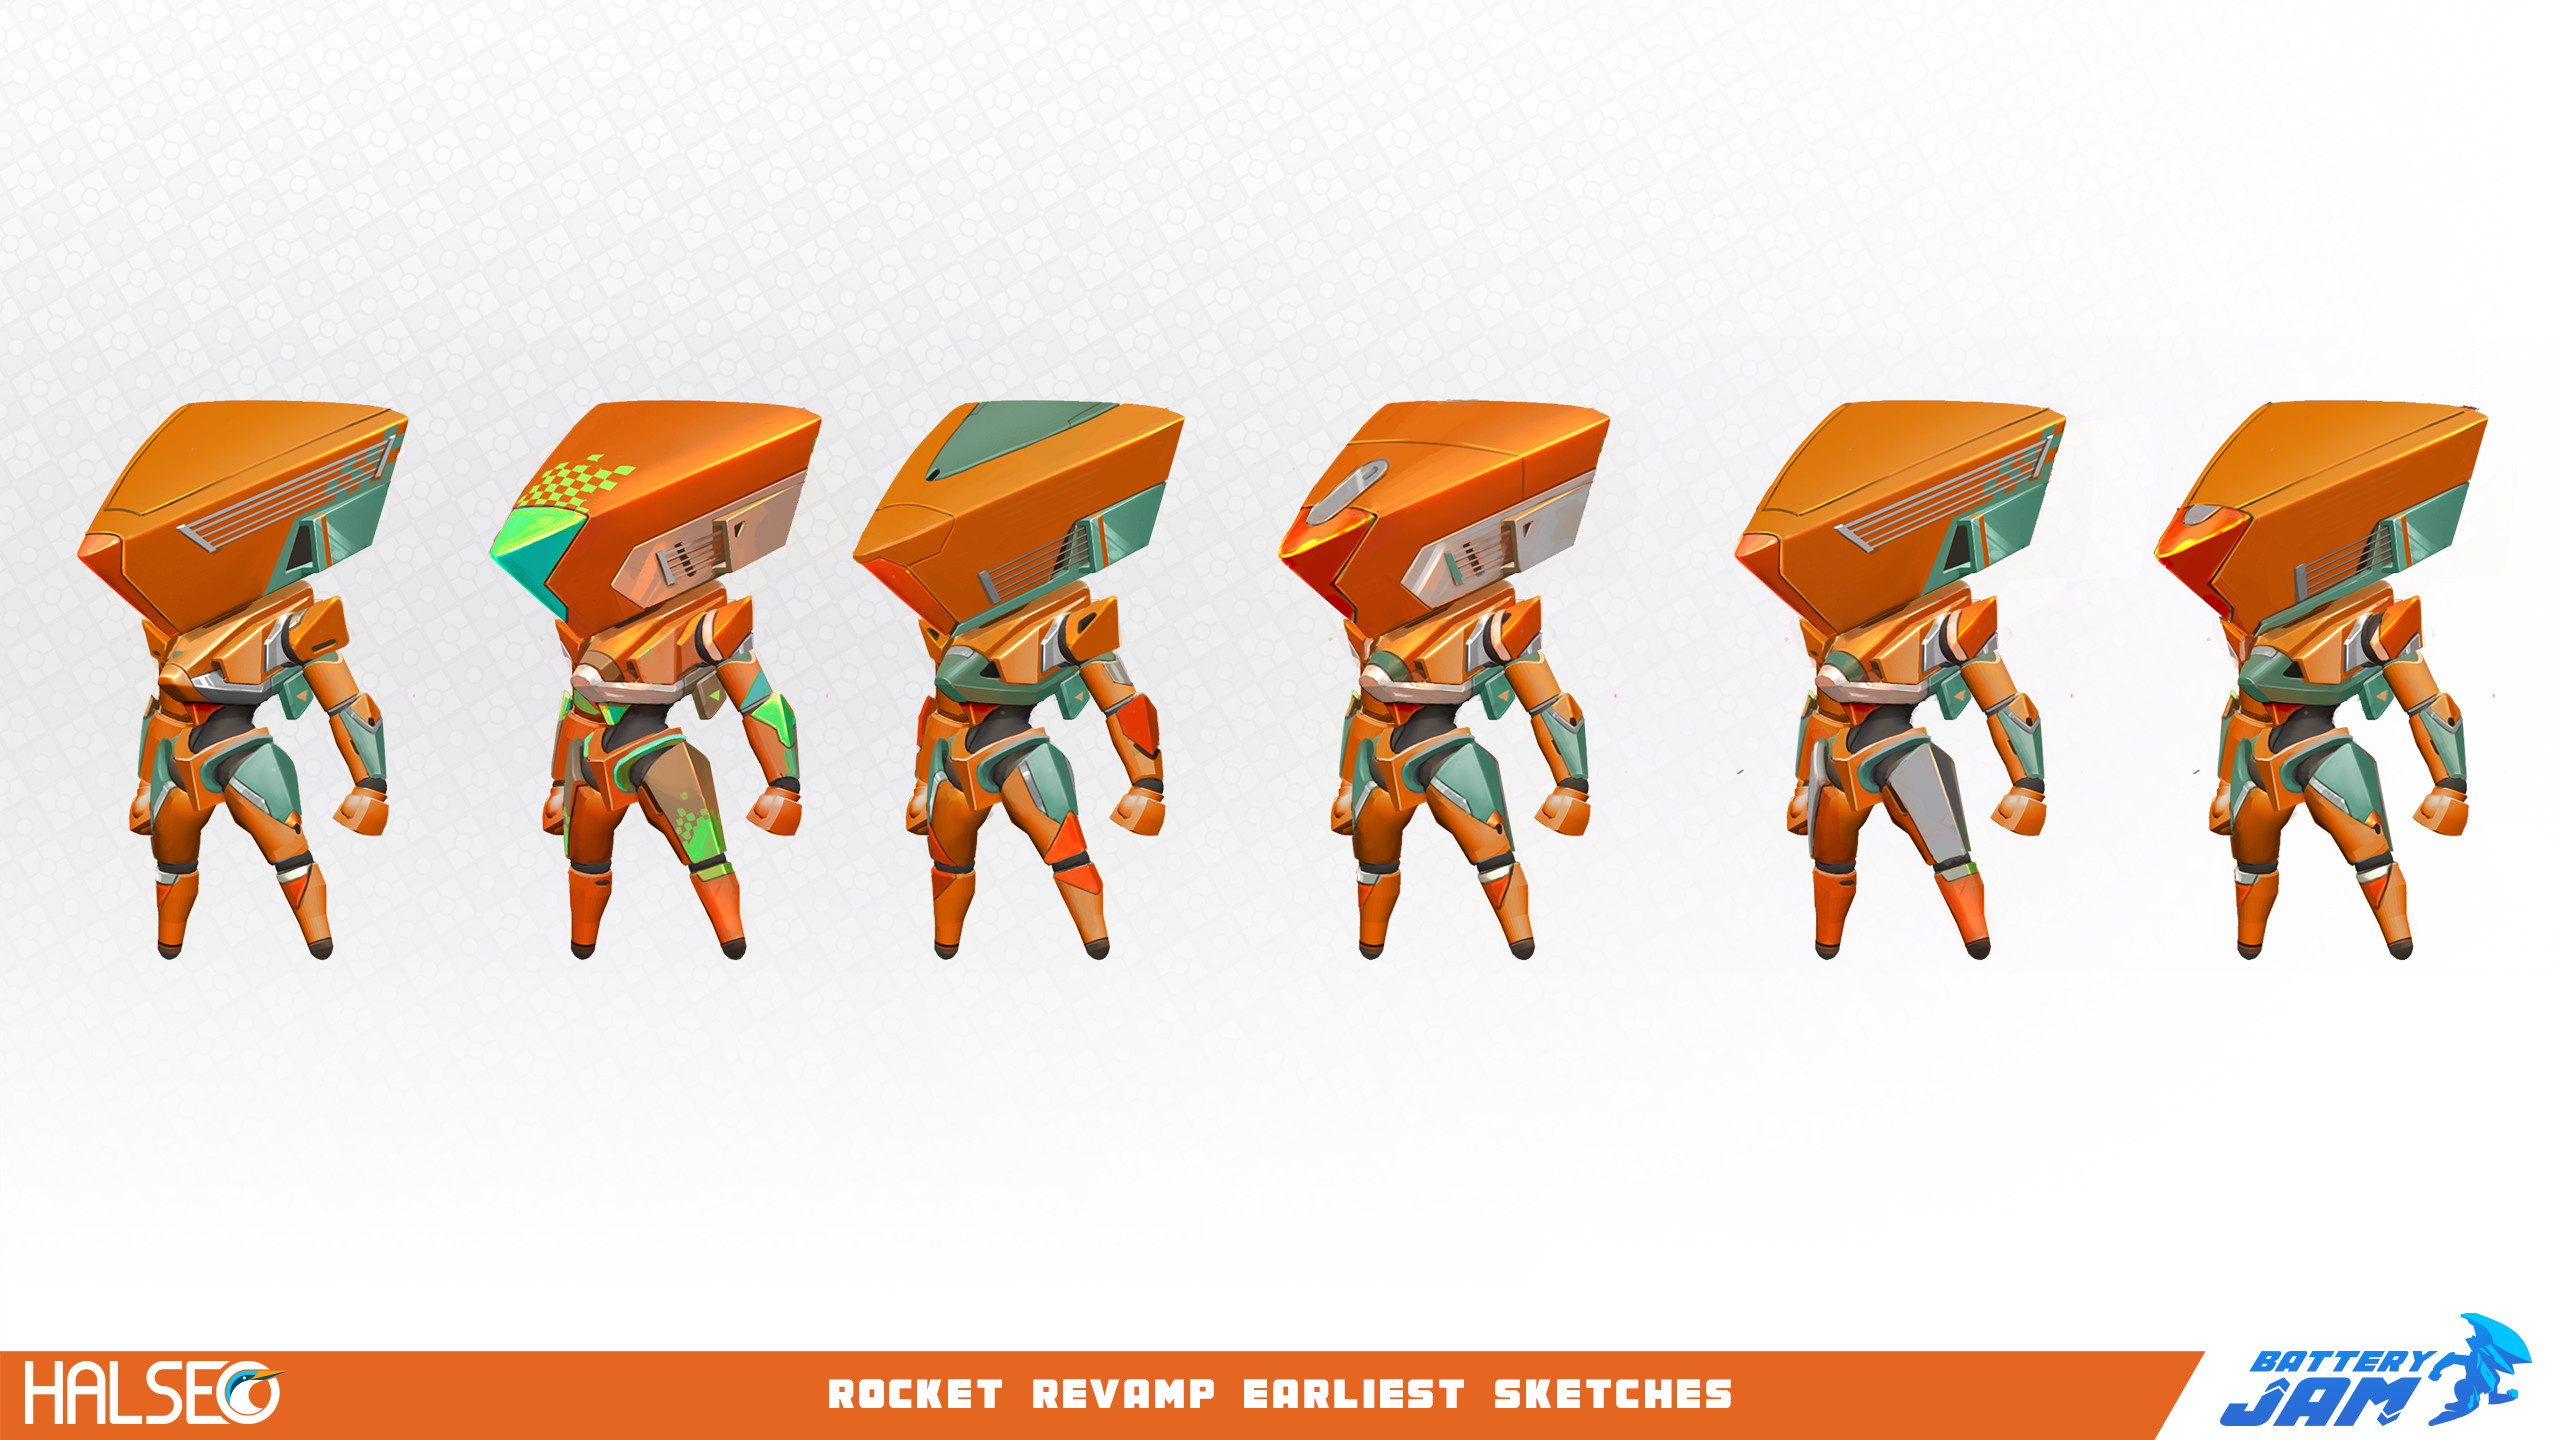 I actually really like the original Rocket designs, but we felt he might look too dangerous.